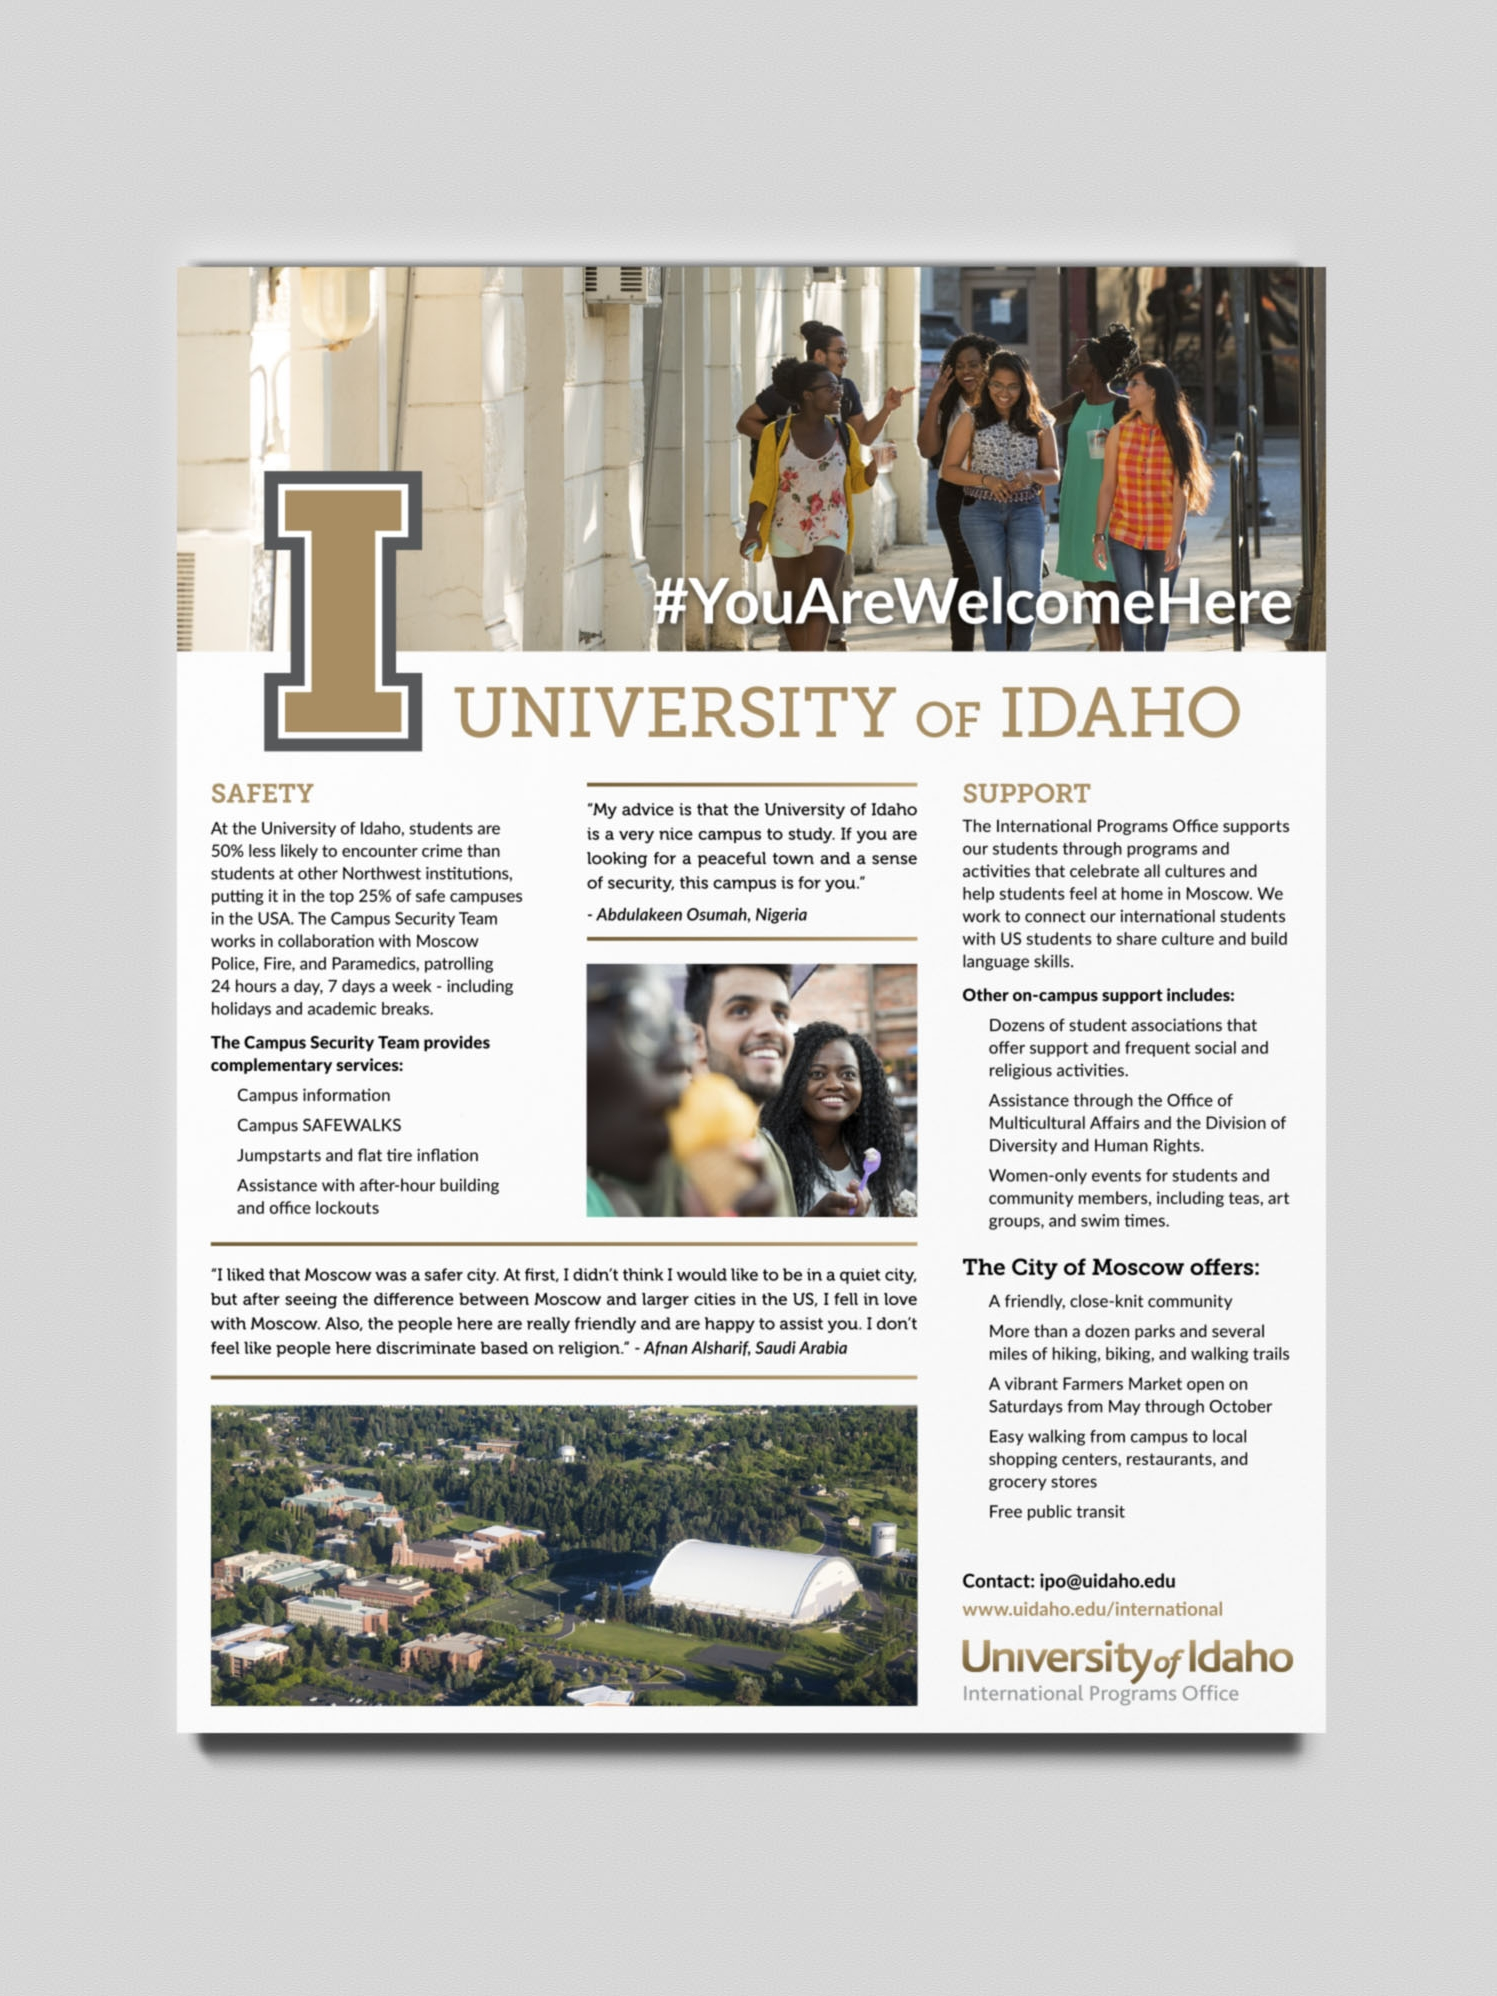 University of Idaho, International Programs Office, safety brochure.